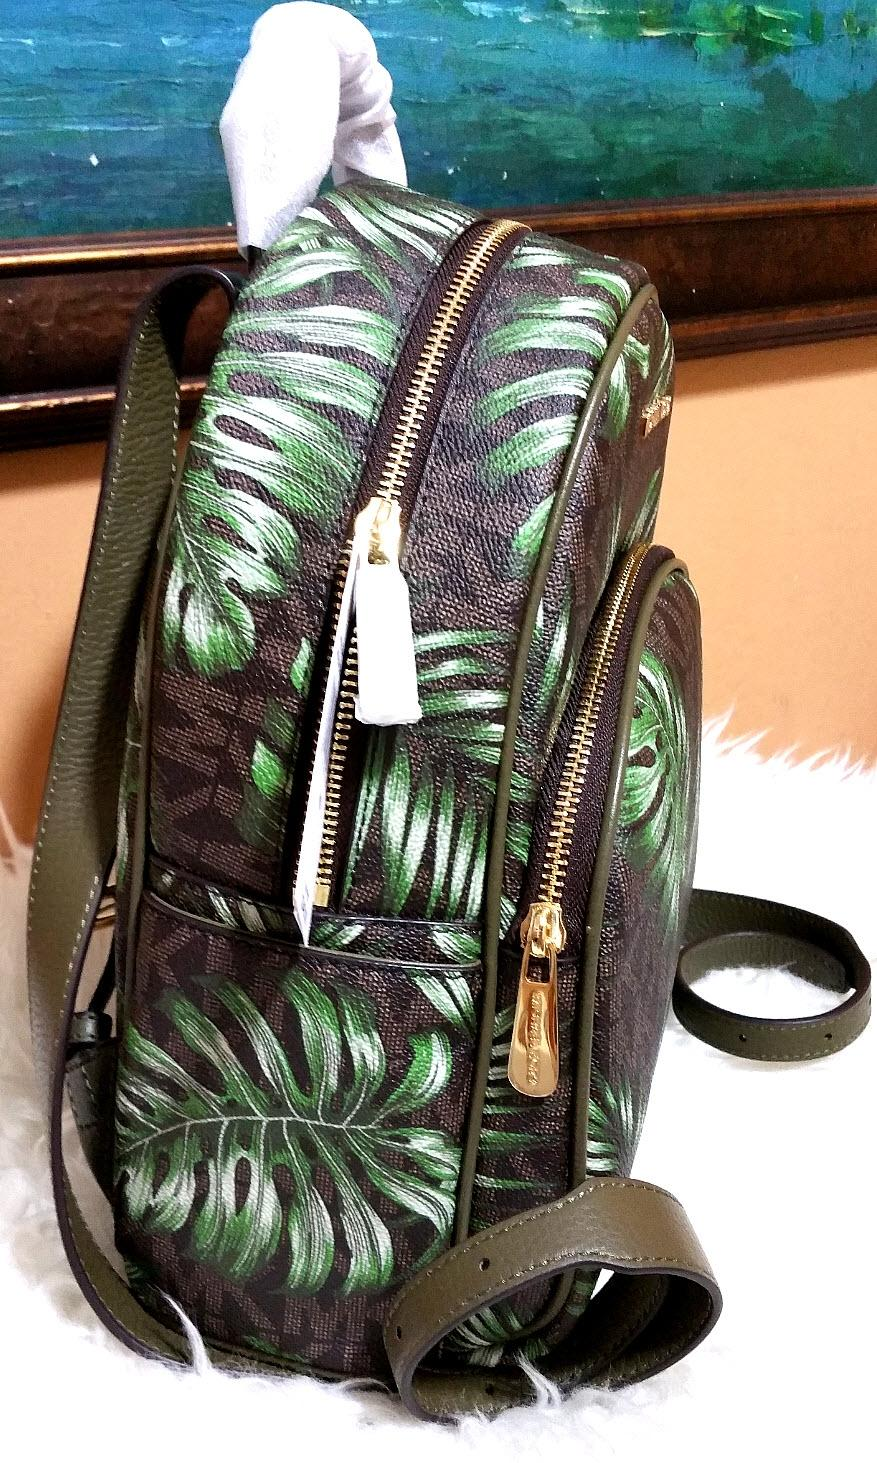 302ae961eb93b6 reduced michael kors abbey medium palm tree wallet set brown olive  signature pvc leather backpack tradesy